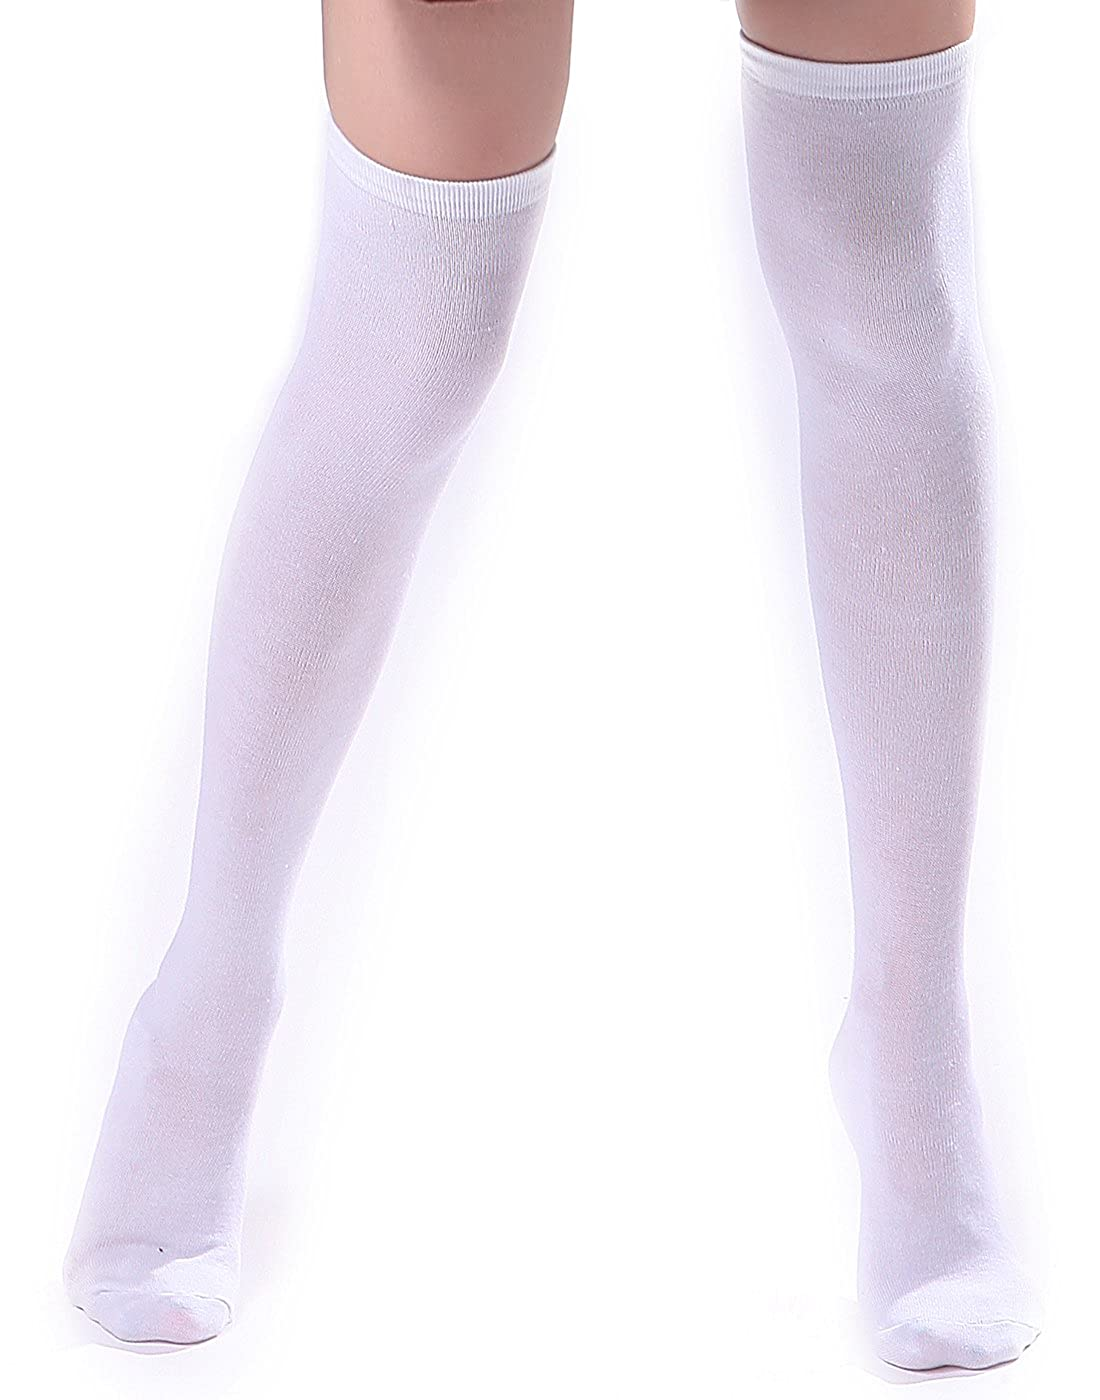 HDE Women's Knee High Stockings Solid Color Opaque Cotton Spandex Fashion Socks HDE-N322-2014